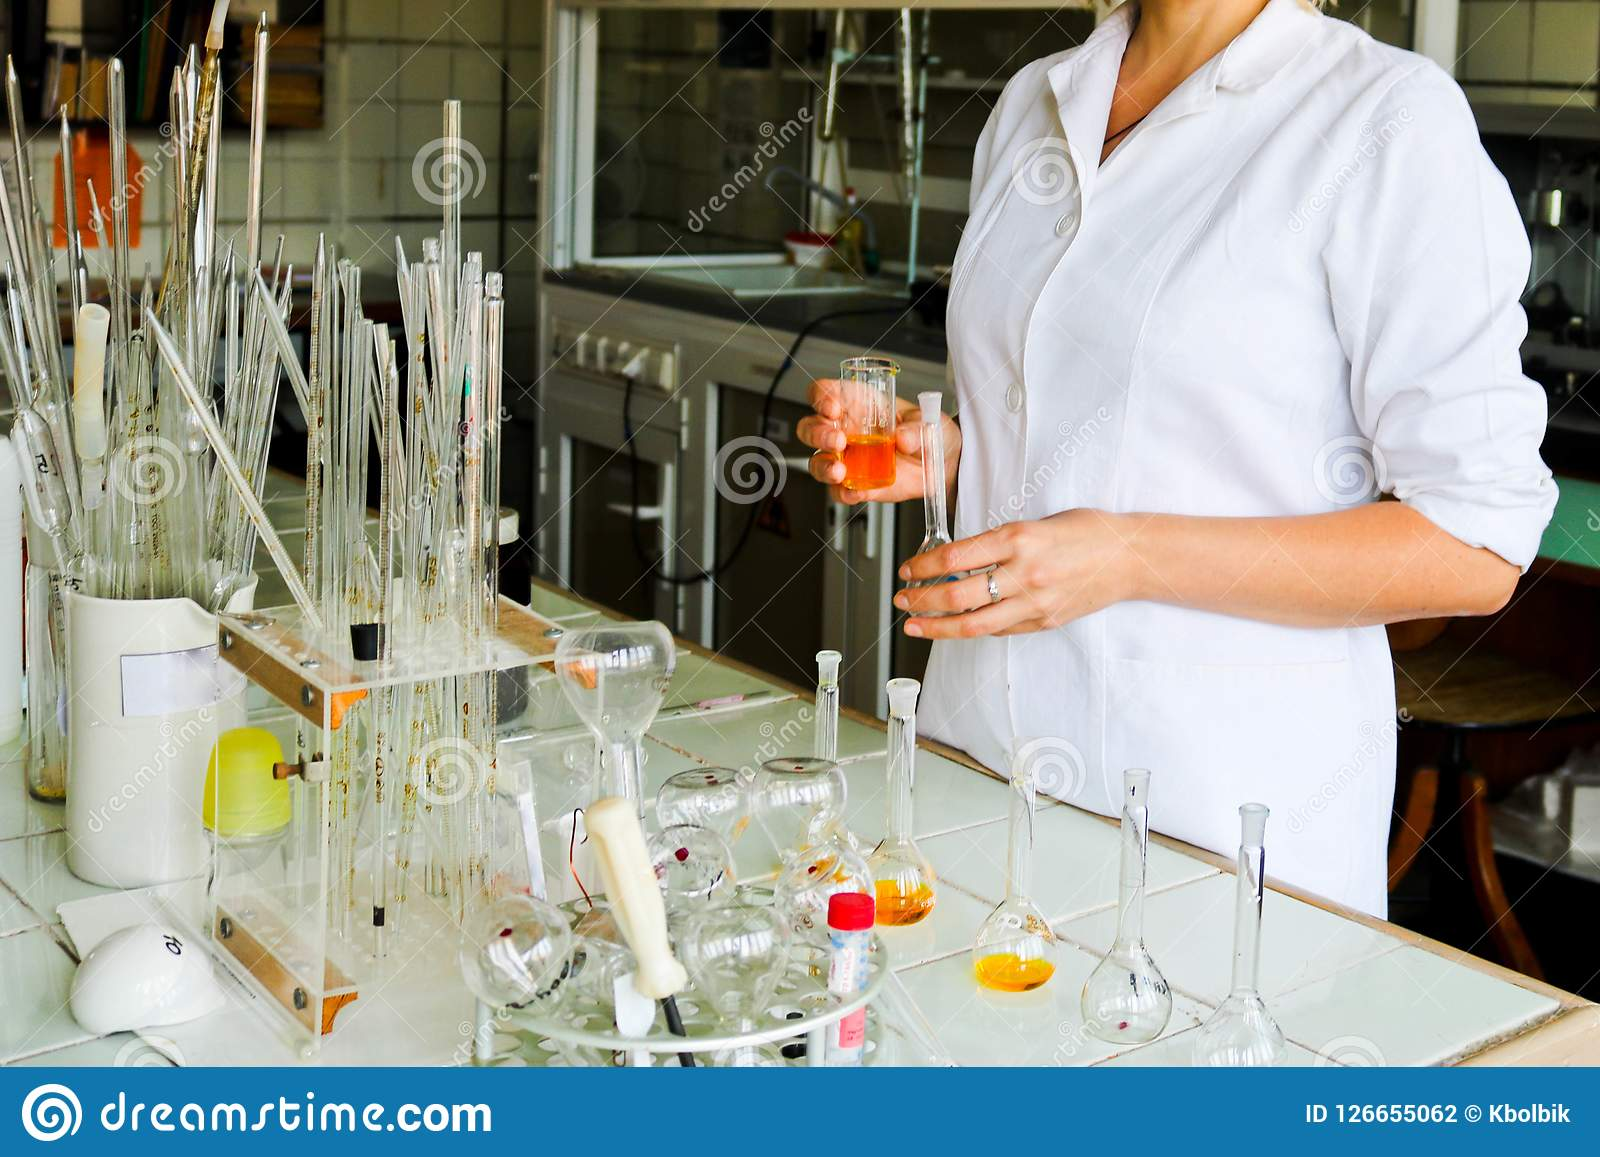 A female laboratory assistant, a doctor, a chemist, works with flasks, test tubes, makes solutions, medicines, mixes ingredients